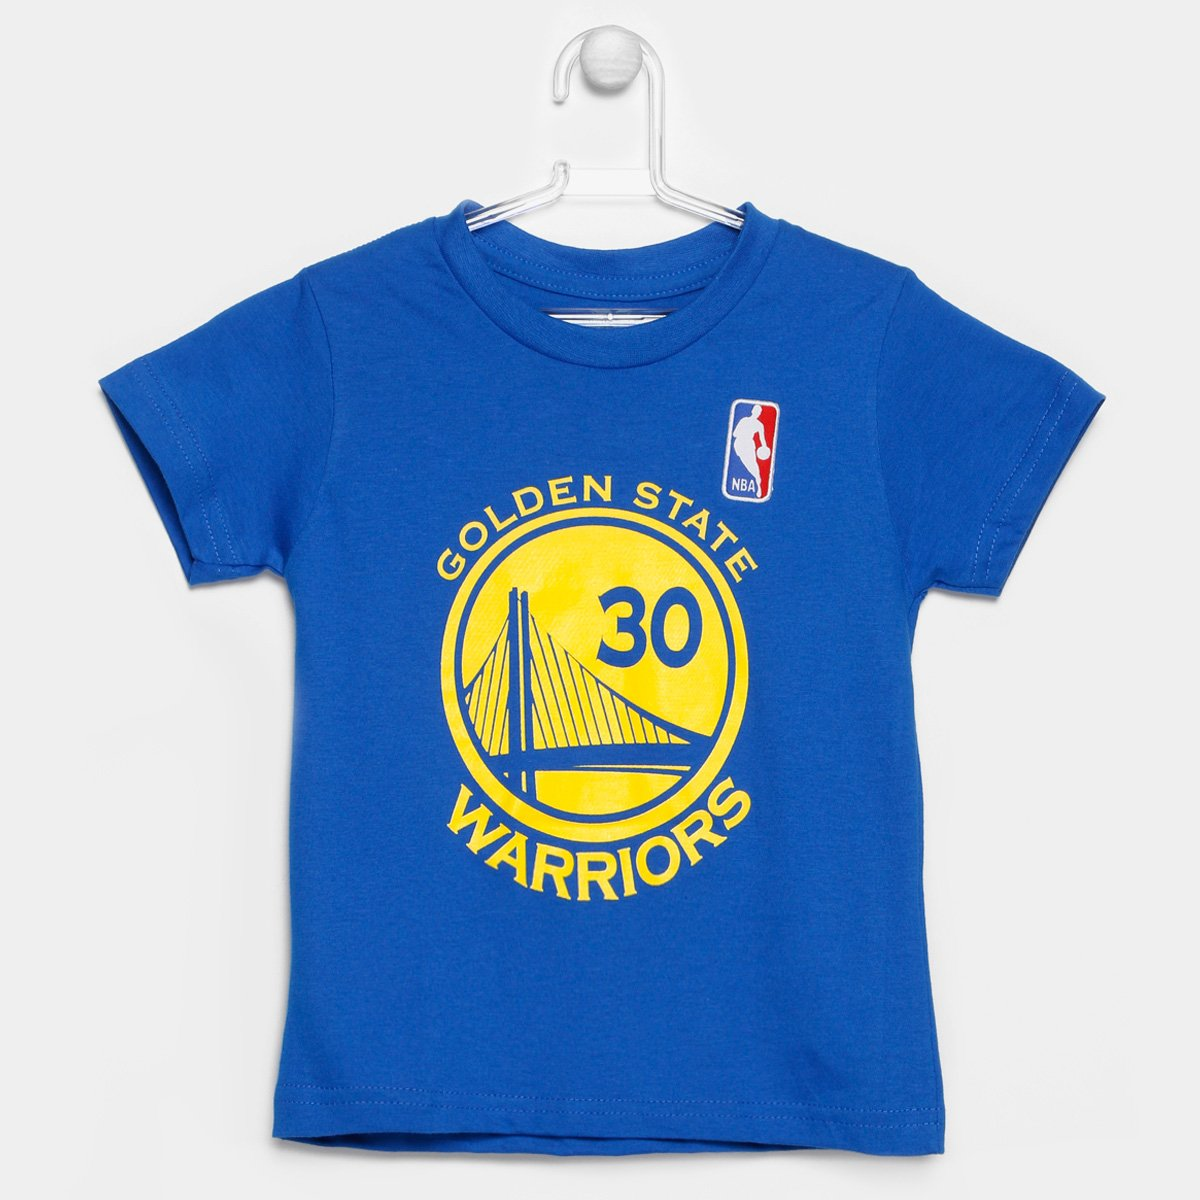 b46f89afa Camiseta NBA Golden State Warriors Curry 30 Infantil - Compre Agora ...